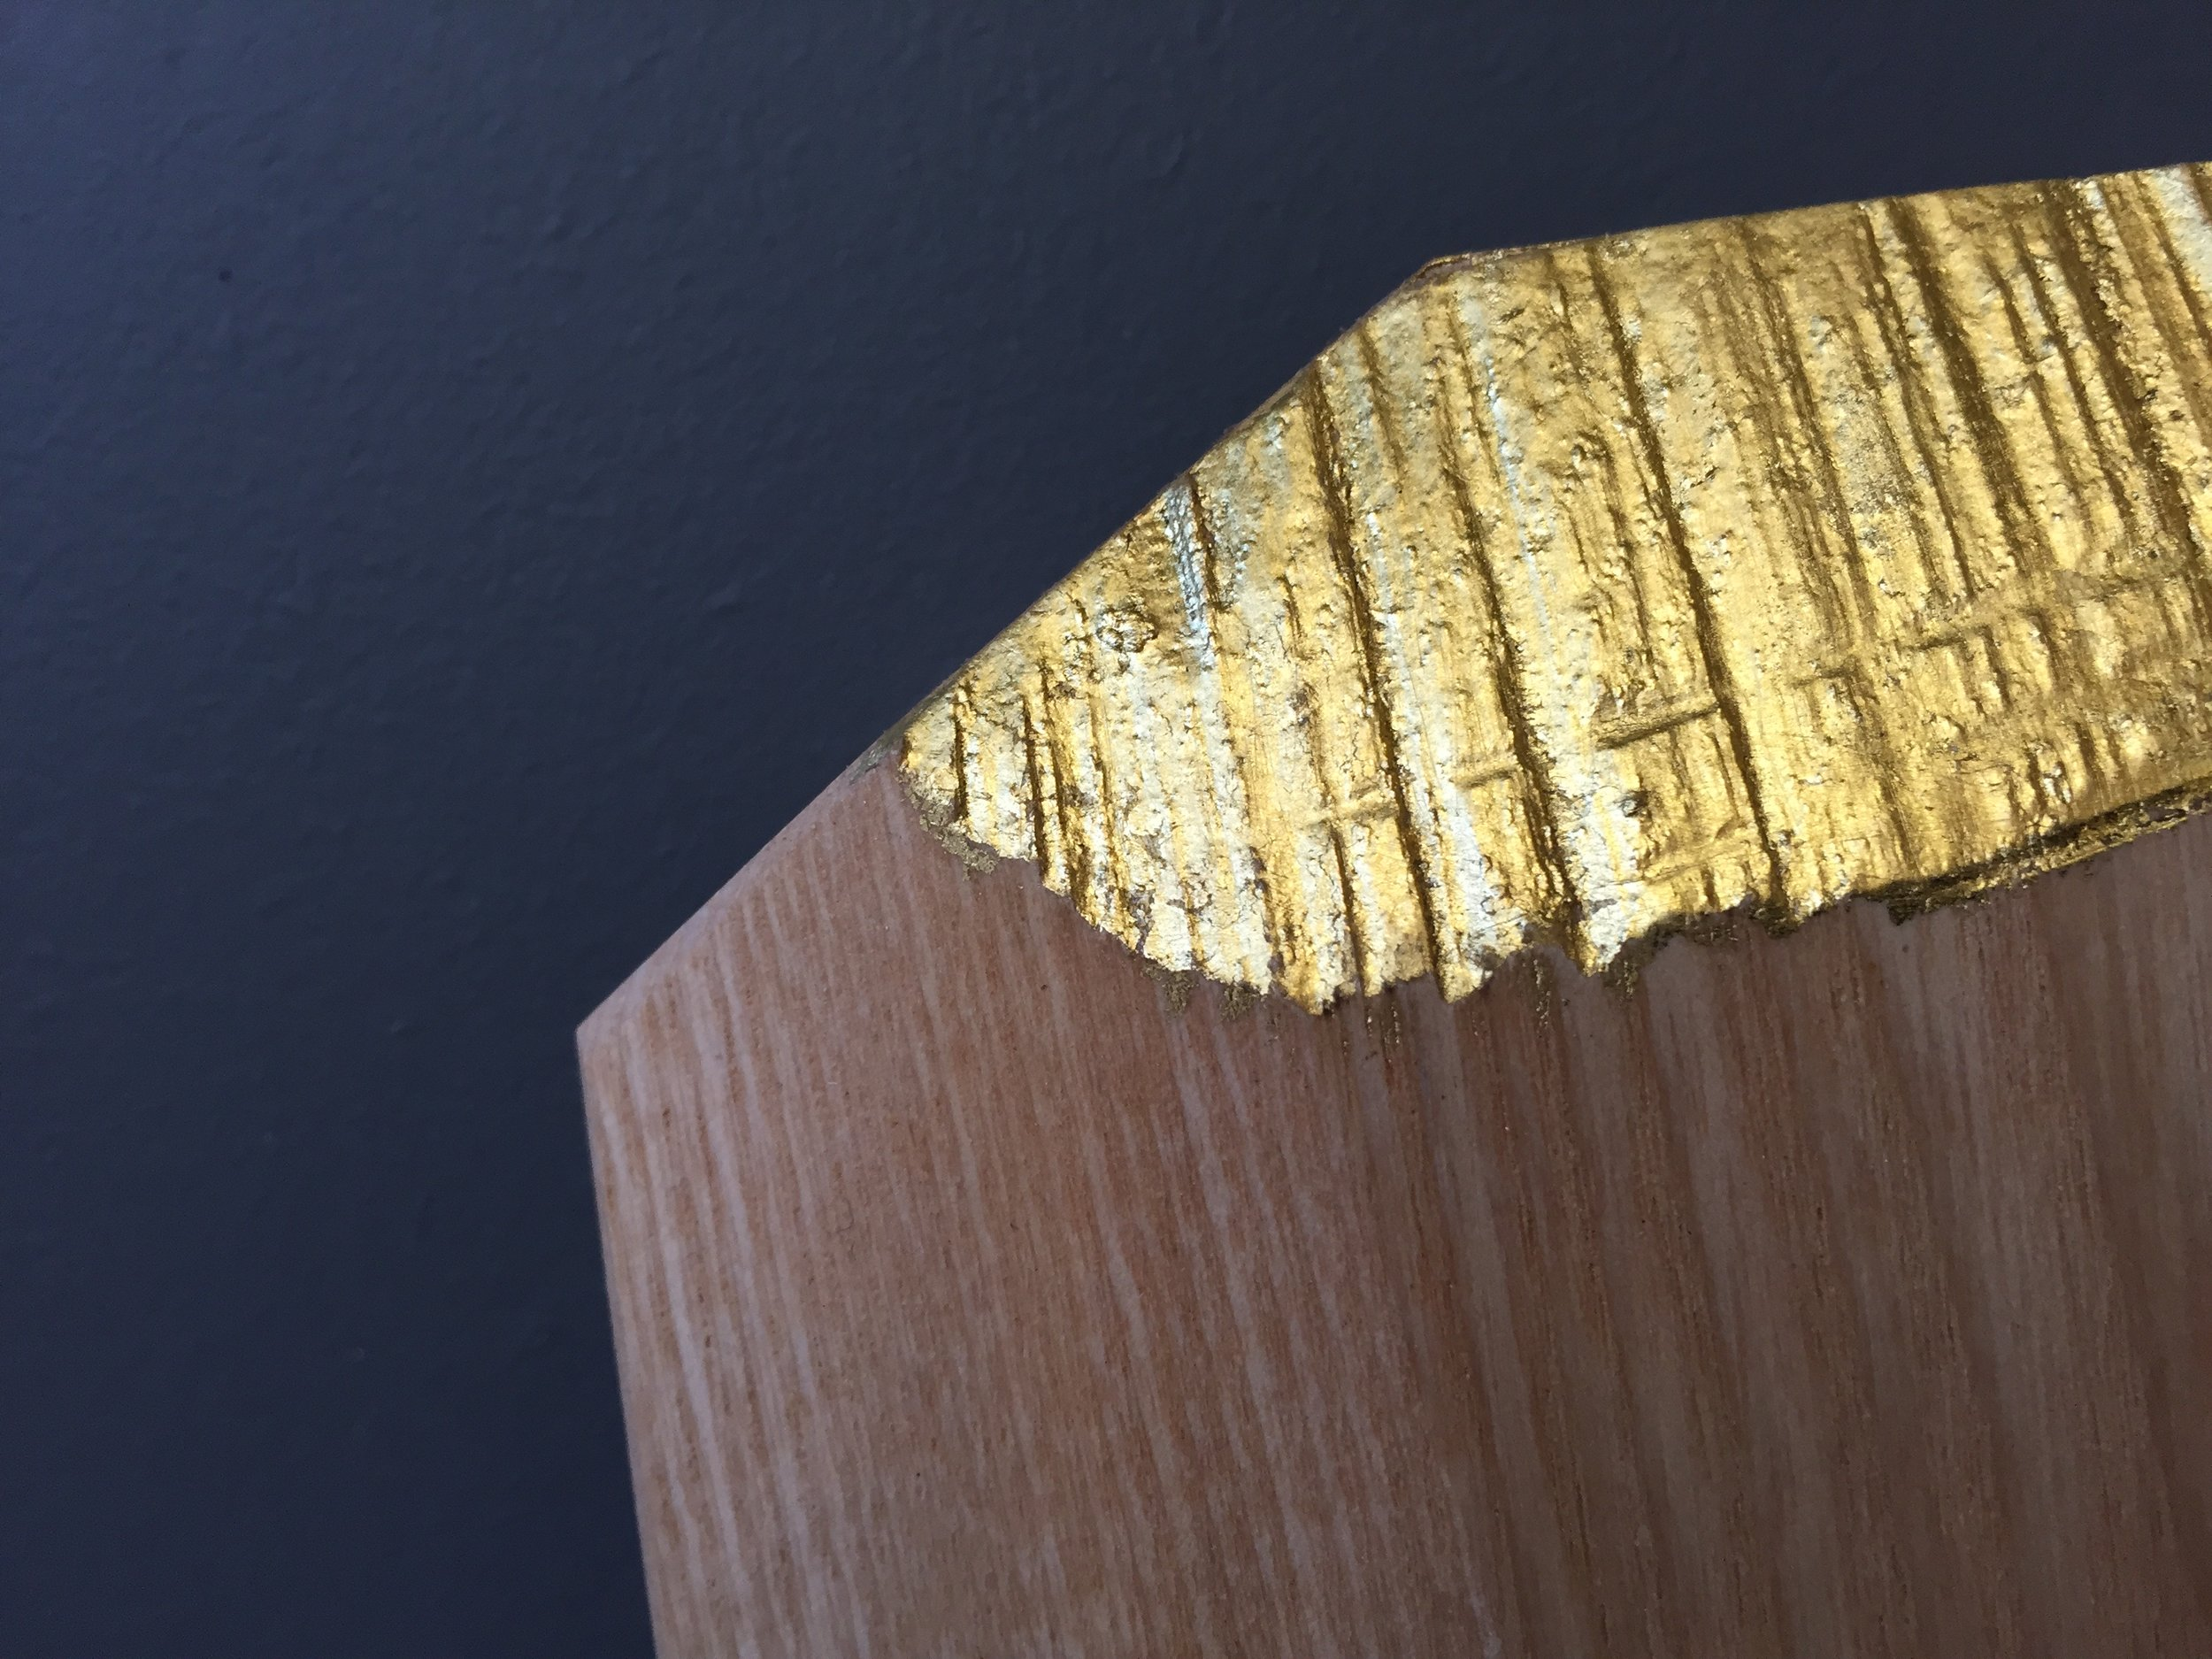 revealing a layer of 22 carat gold leaf on crafted clothes hangers